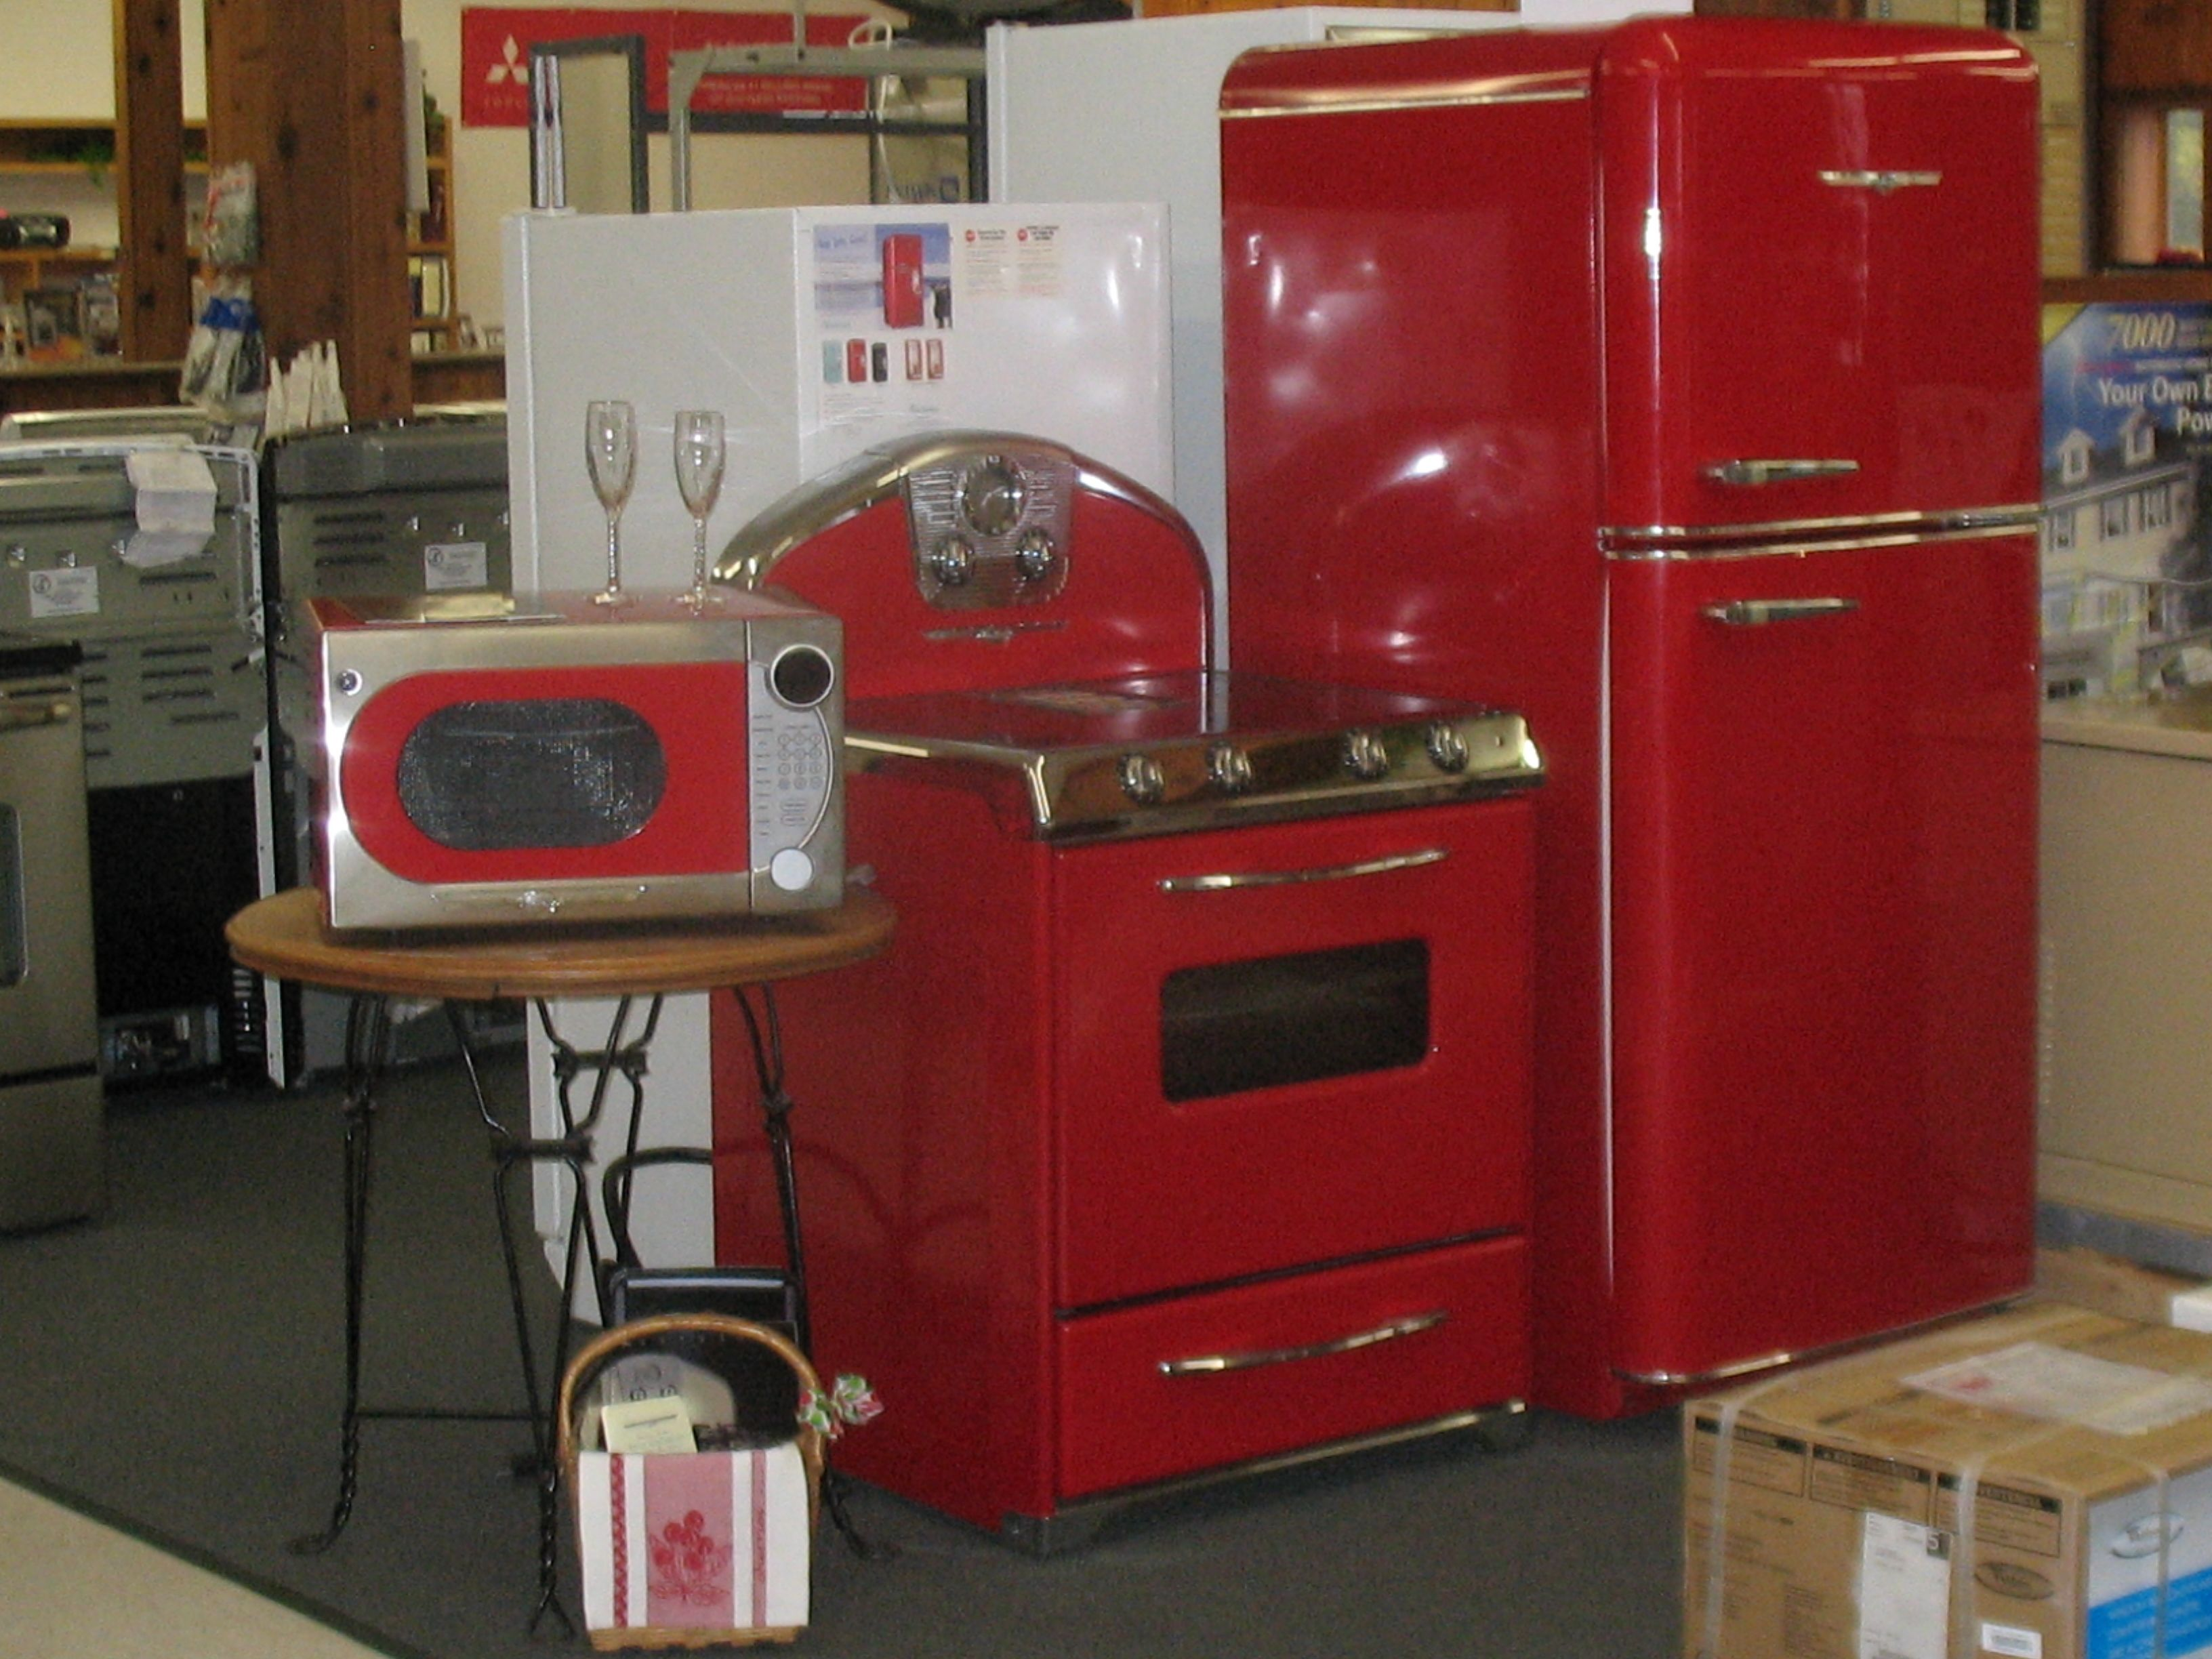 Retro Kitchen Stoves Trash Cans 1950s Styled Appliances With All The Modern